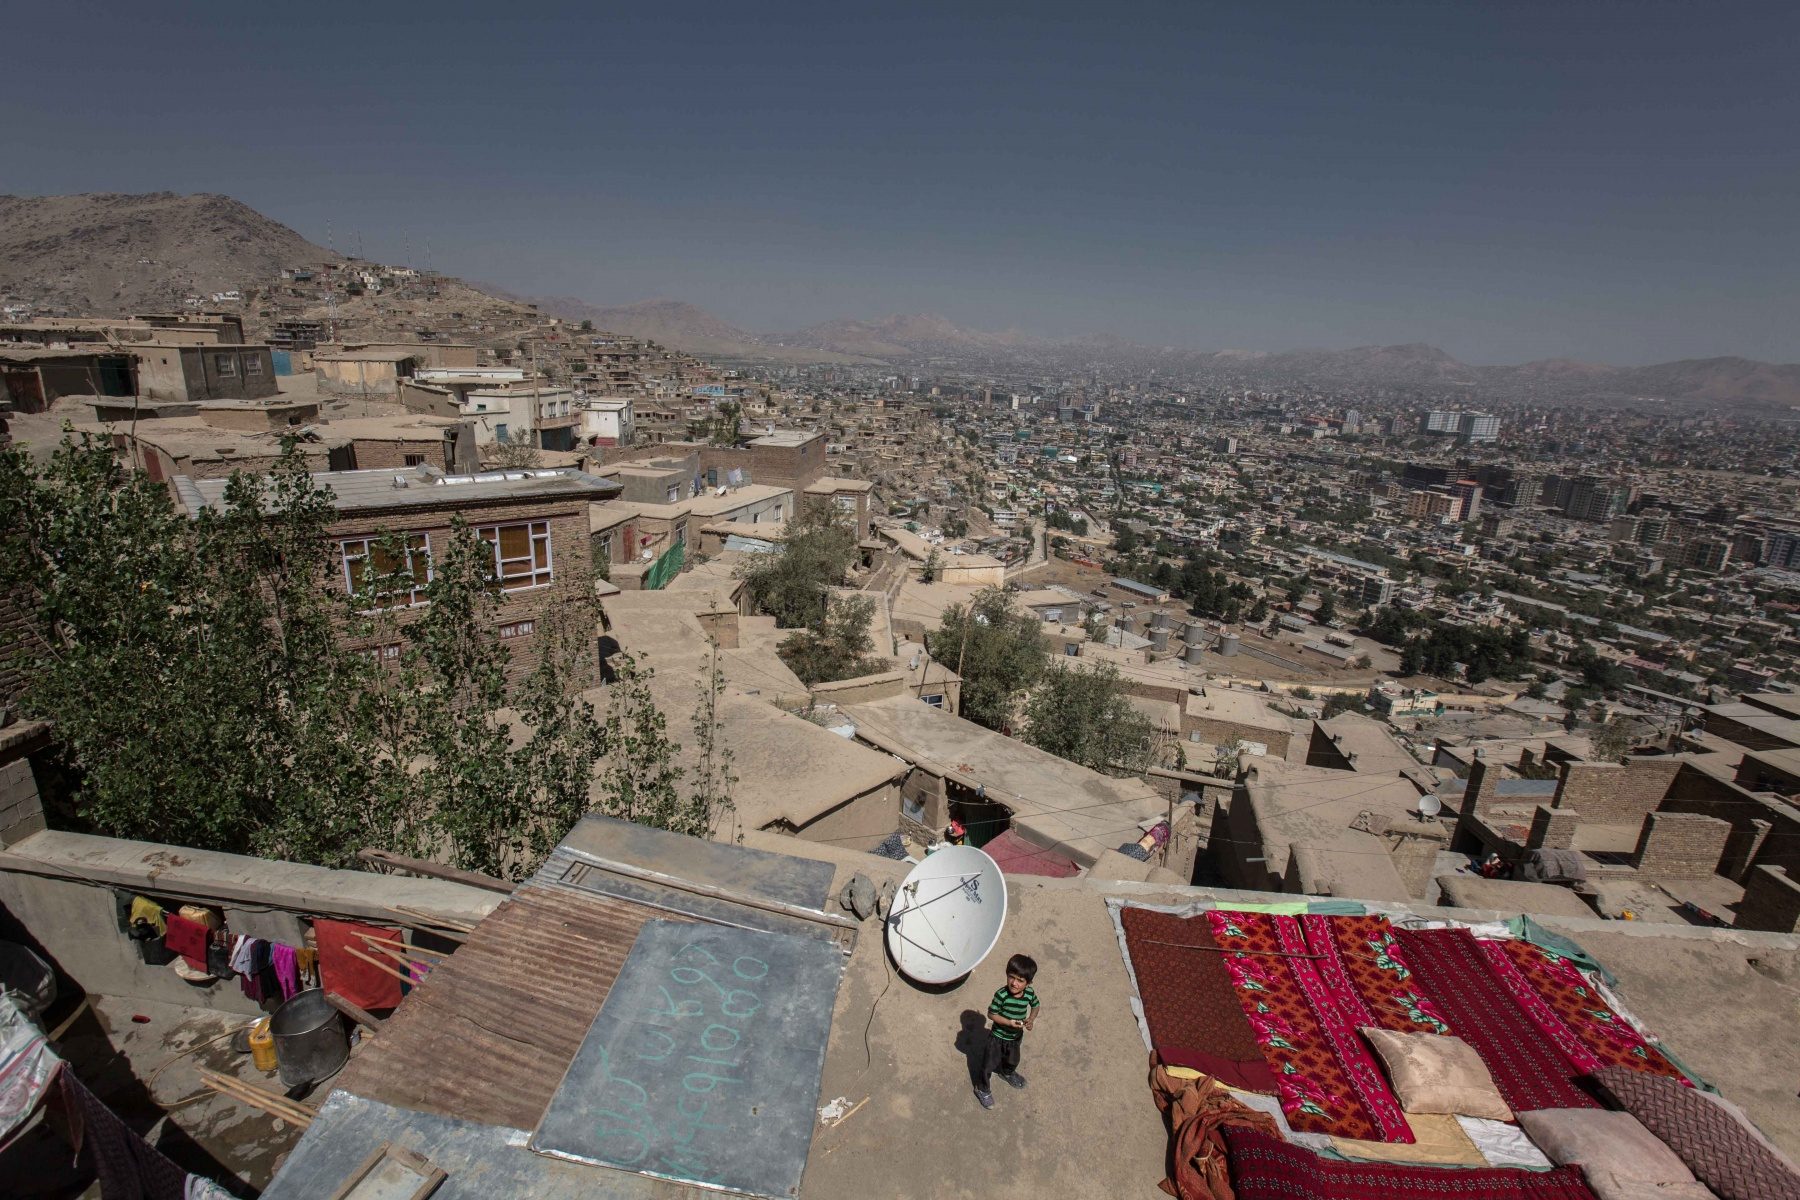 View of Kabul from the heights of the city